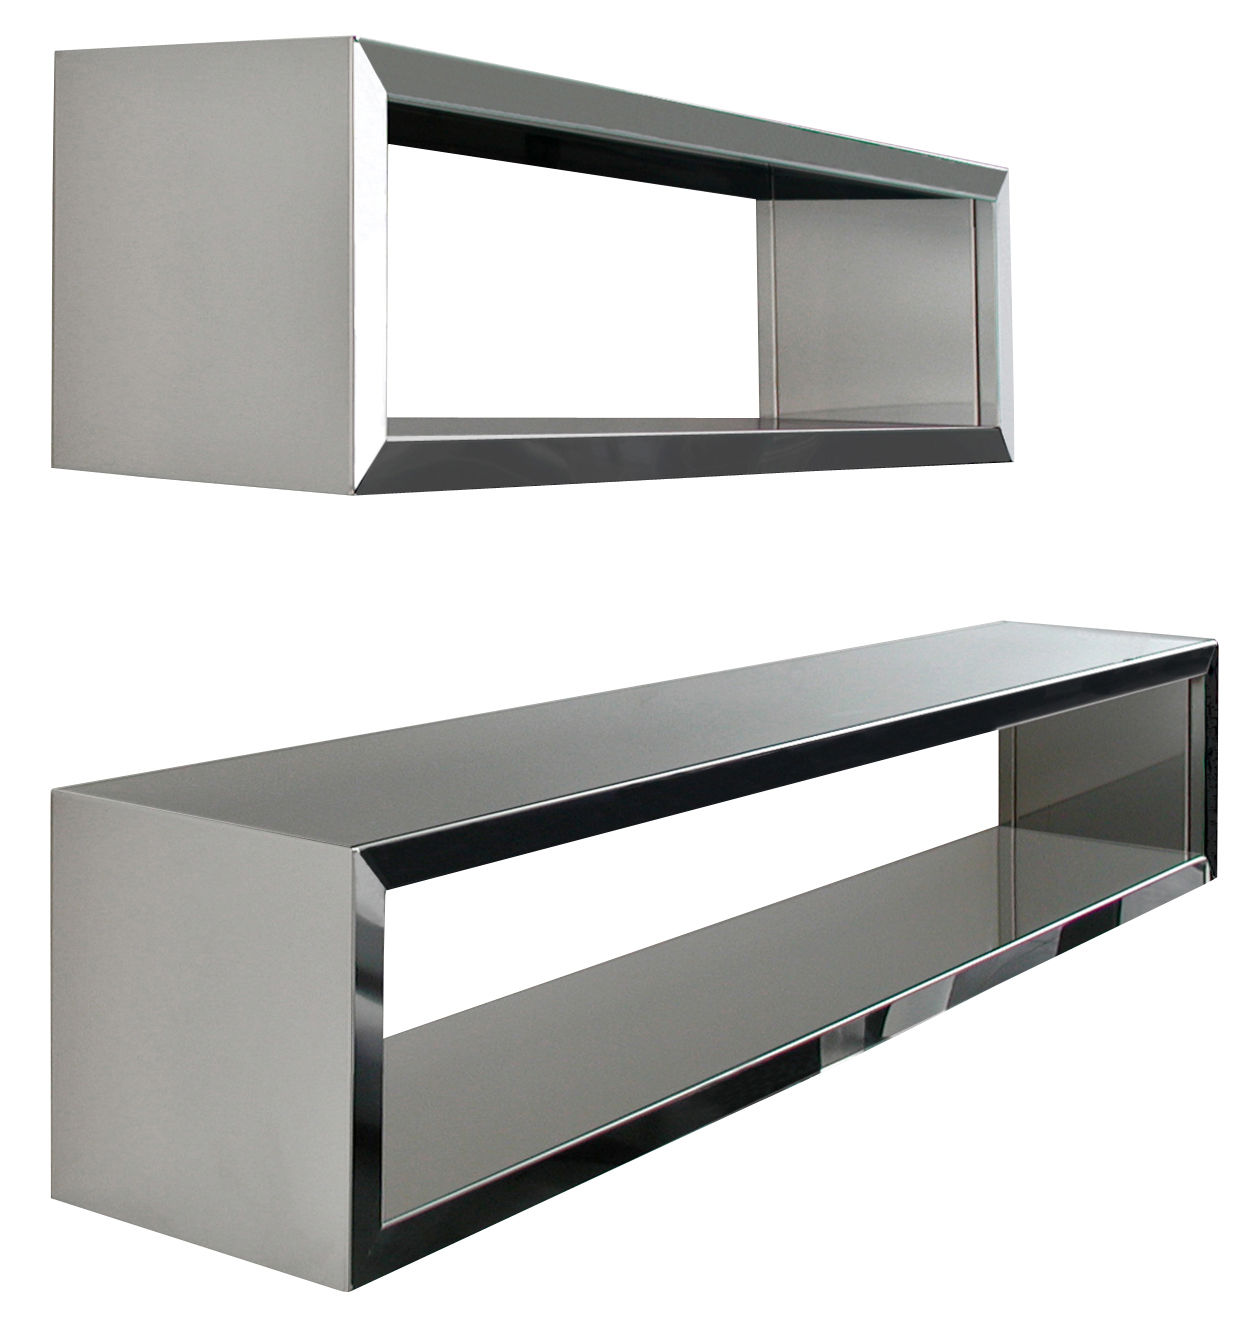 etag re inox wall rack finition miroir l 100 cm zeus. Black Bedroom Furniture Sets. Home Design Ideas